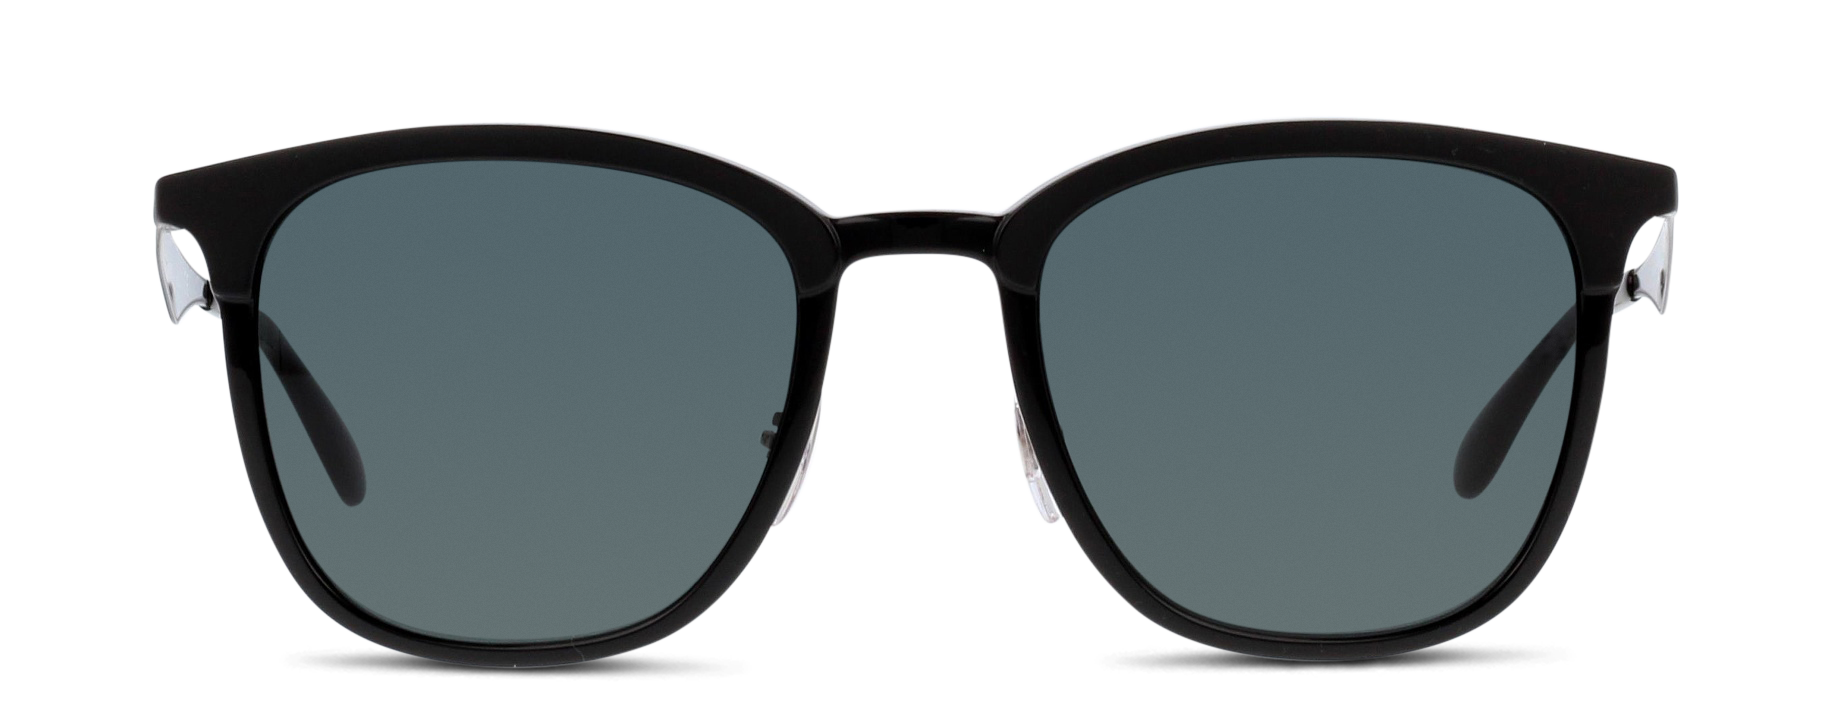 Front Ray-Ban 0RB4278/628271/5121/145 Sort